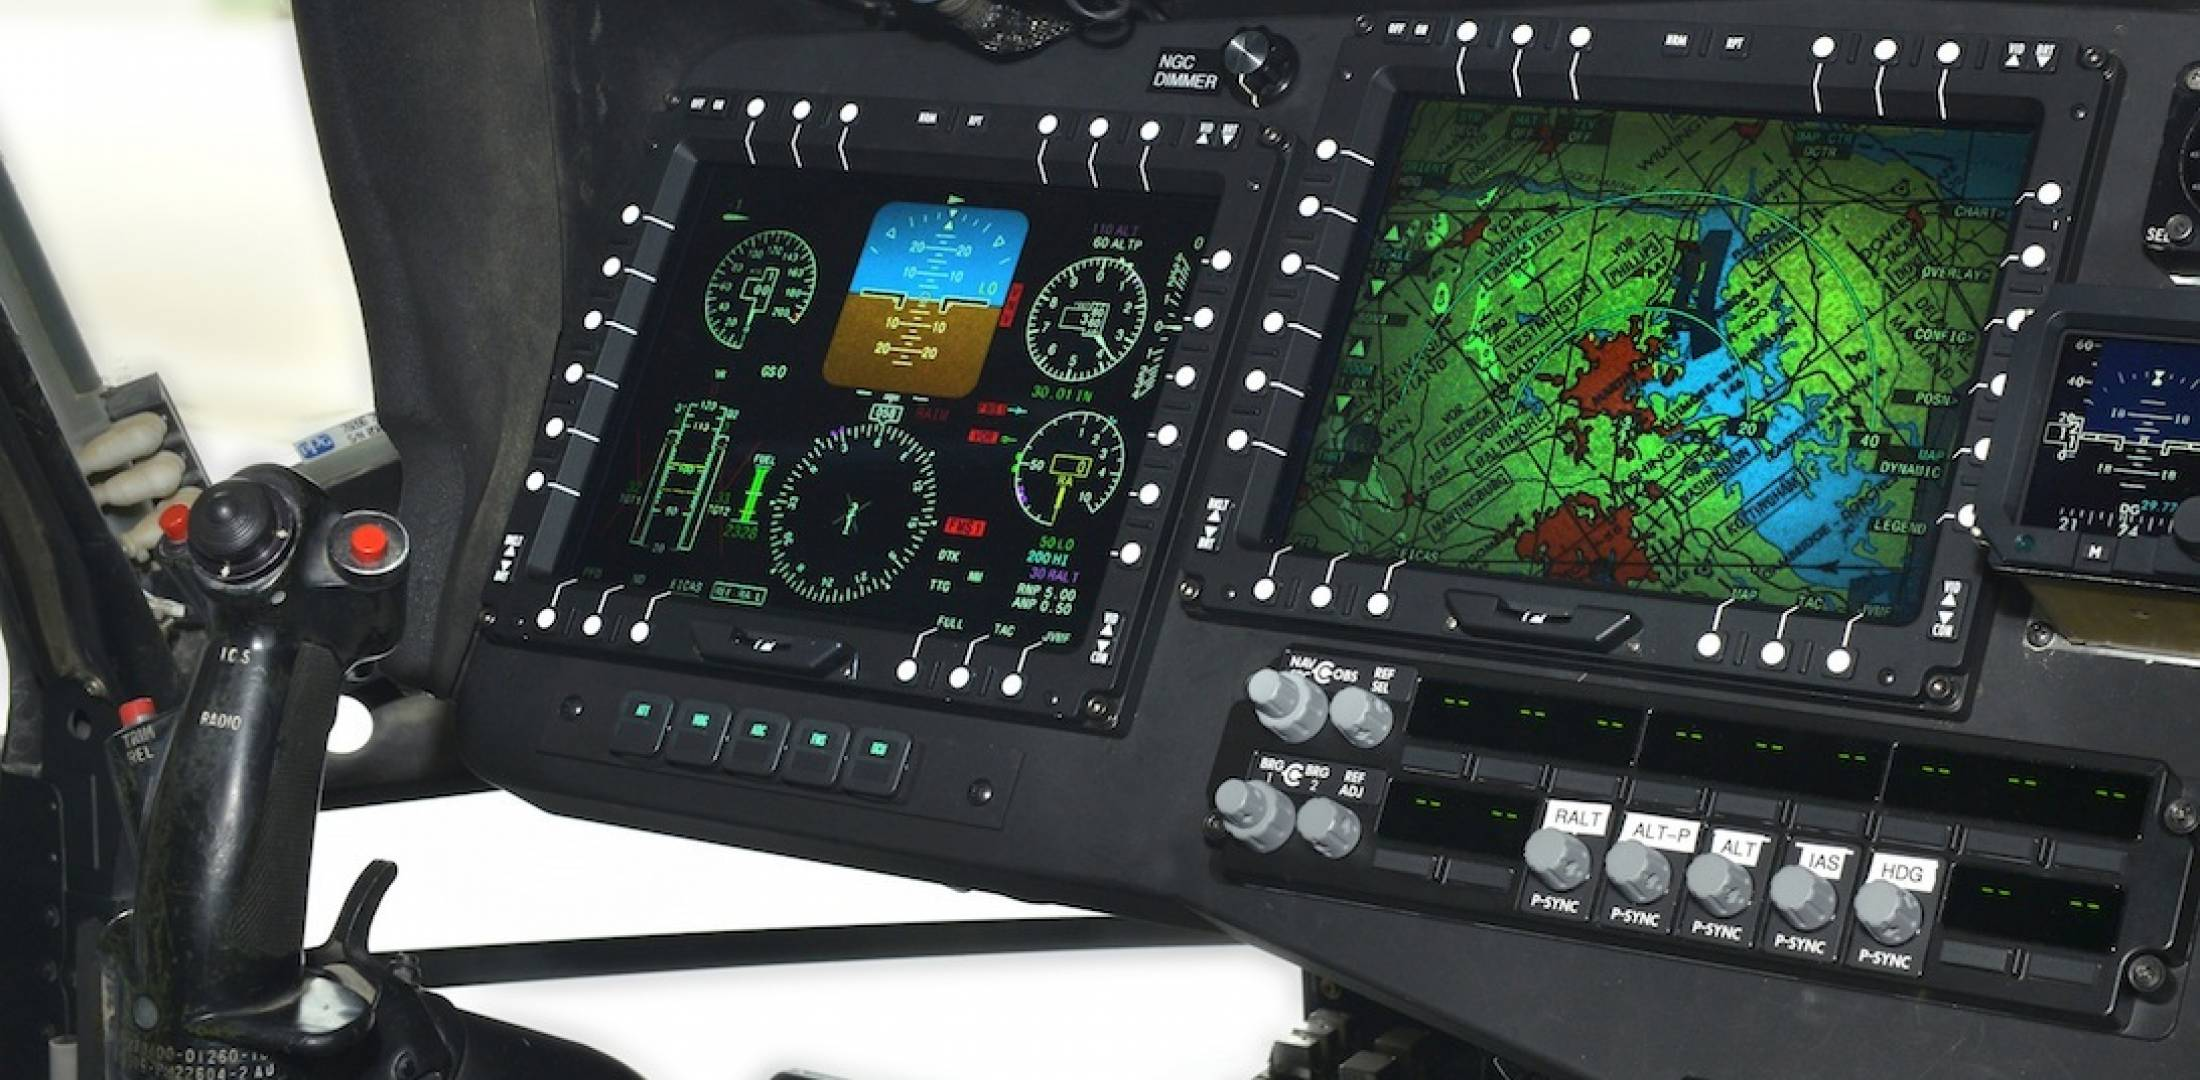 UH-60V cockpit displays